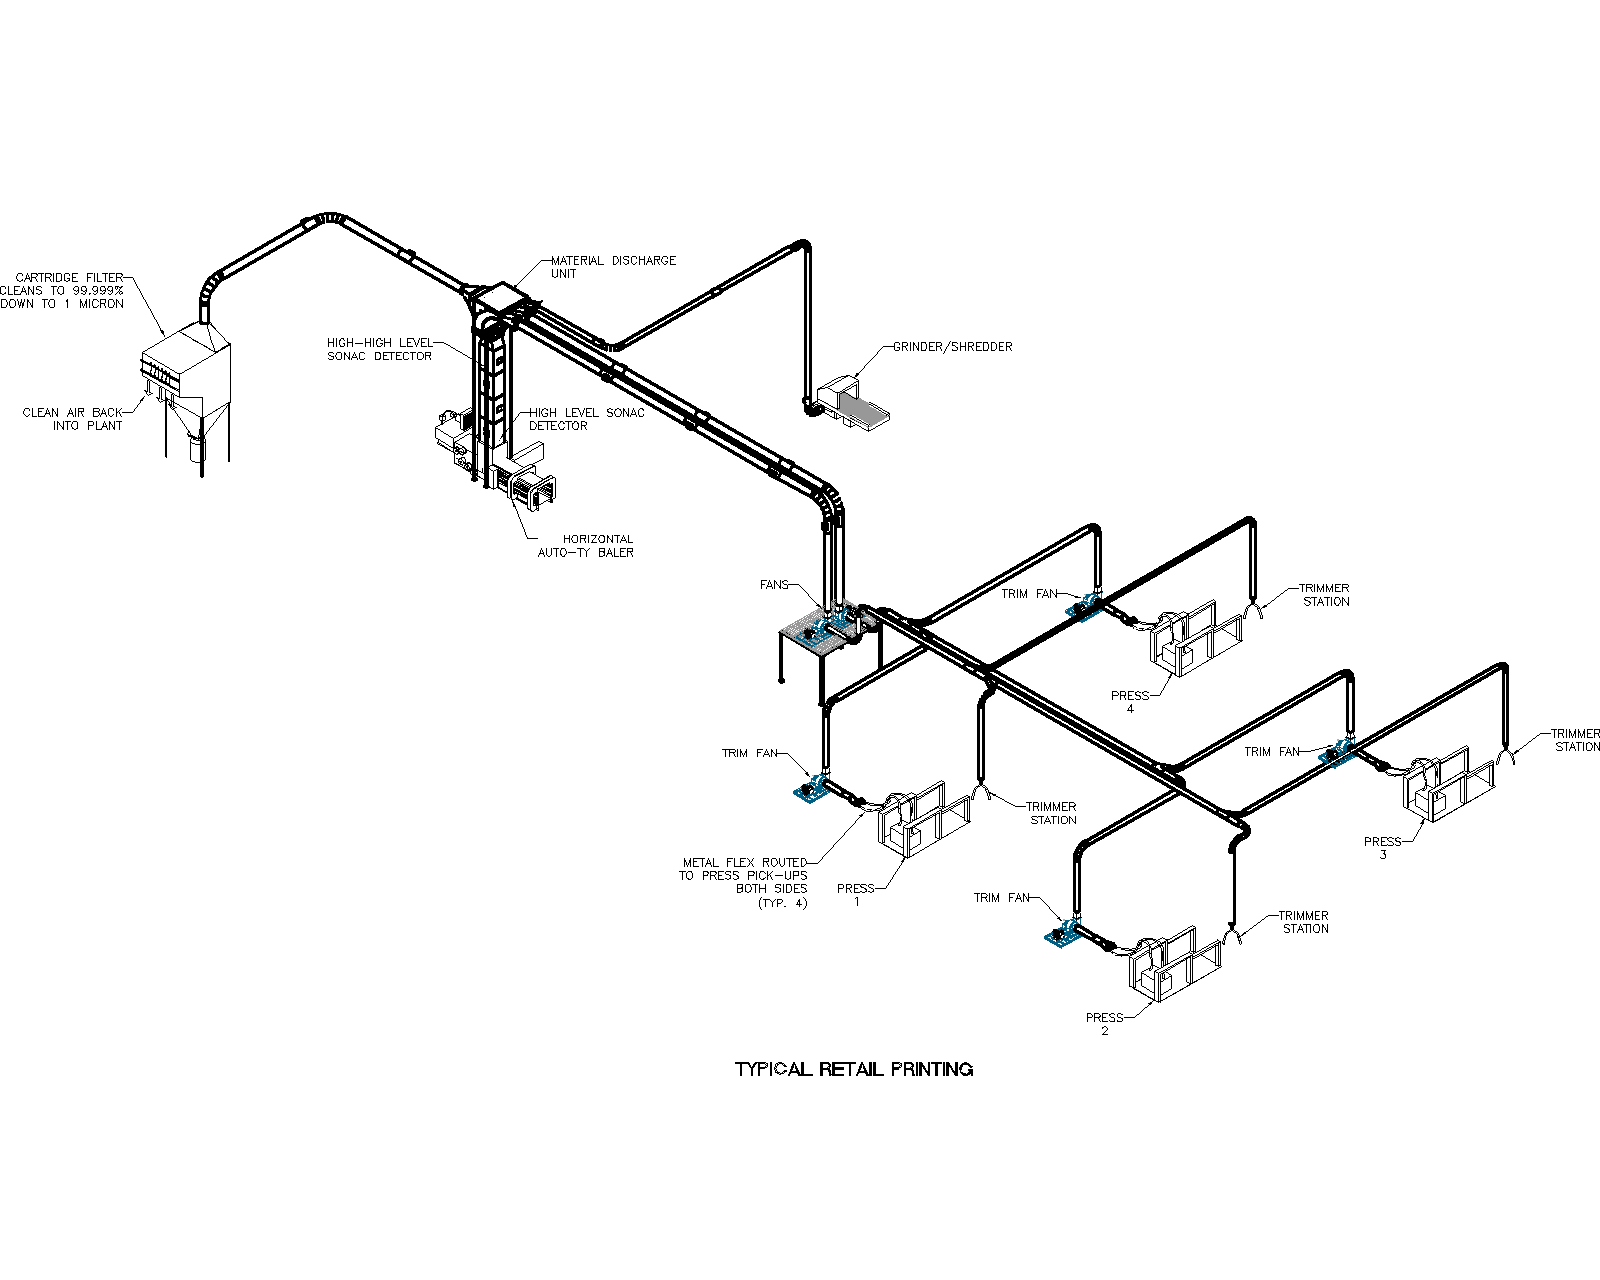 Pneumatic Conveying Systems Retail Printing Trim System Air Systems Design